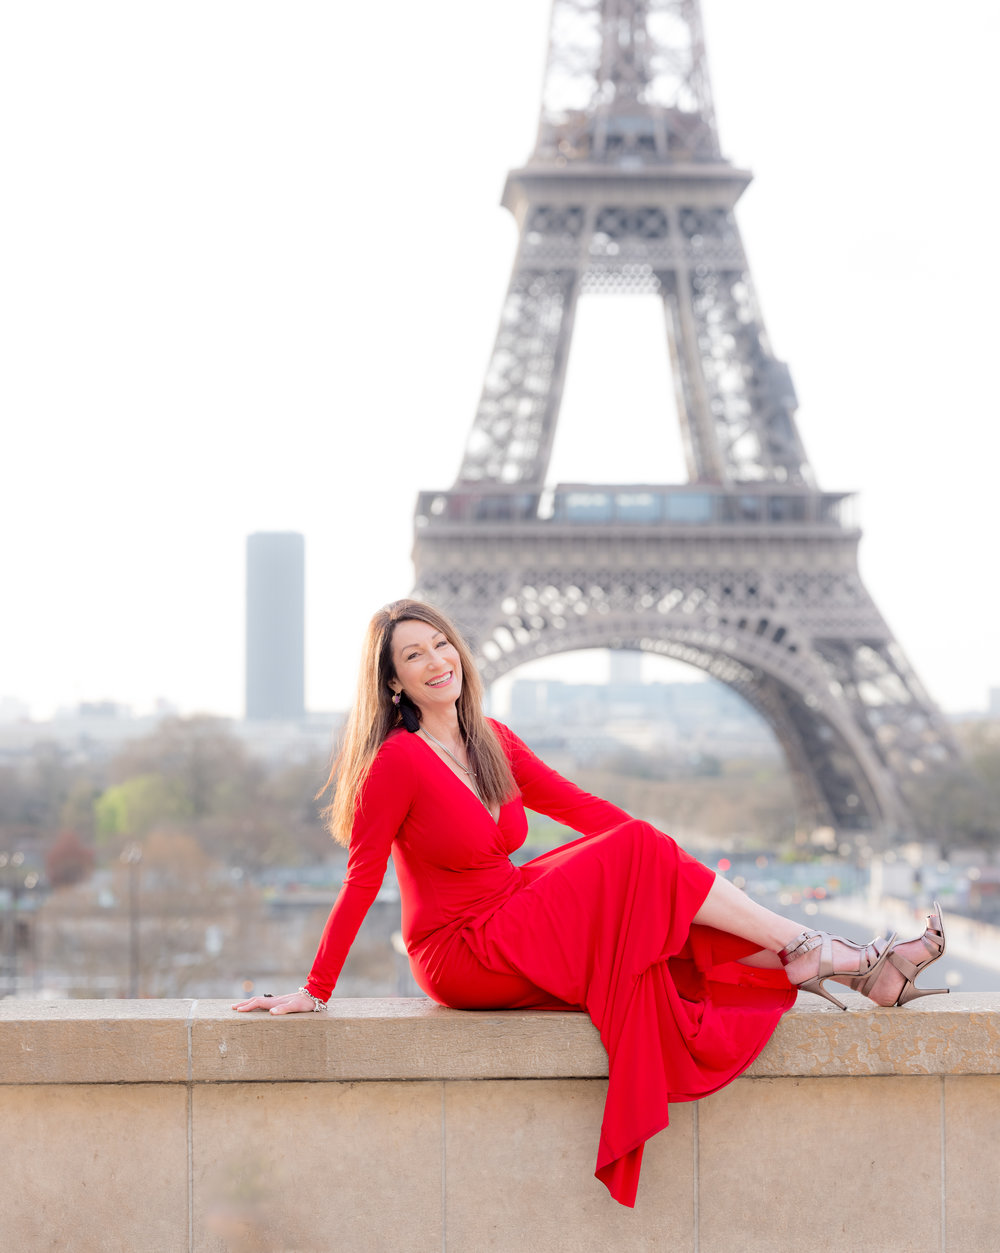 paris dream shoot for women at the eiffel tower in paris